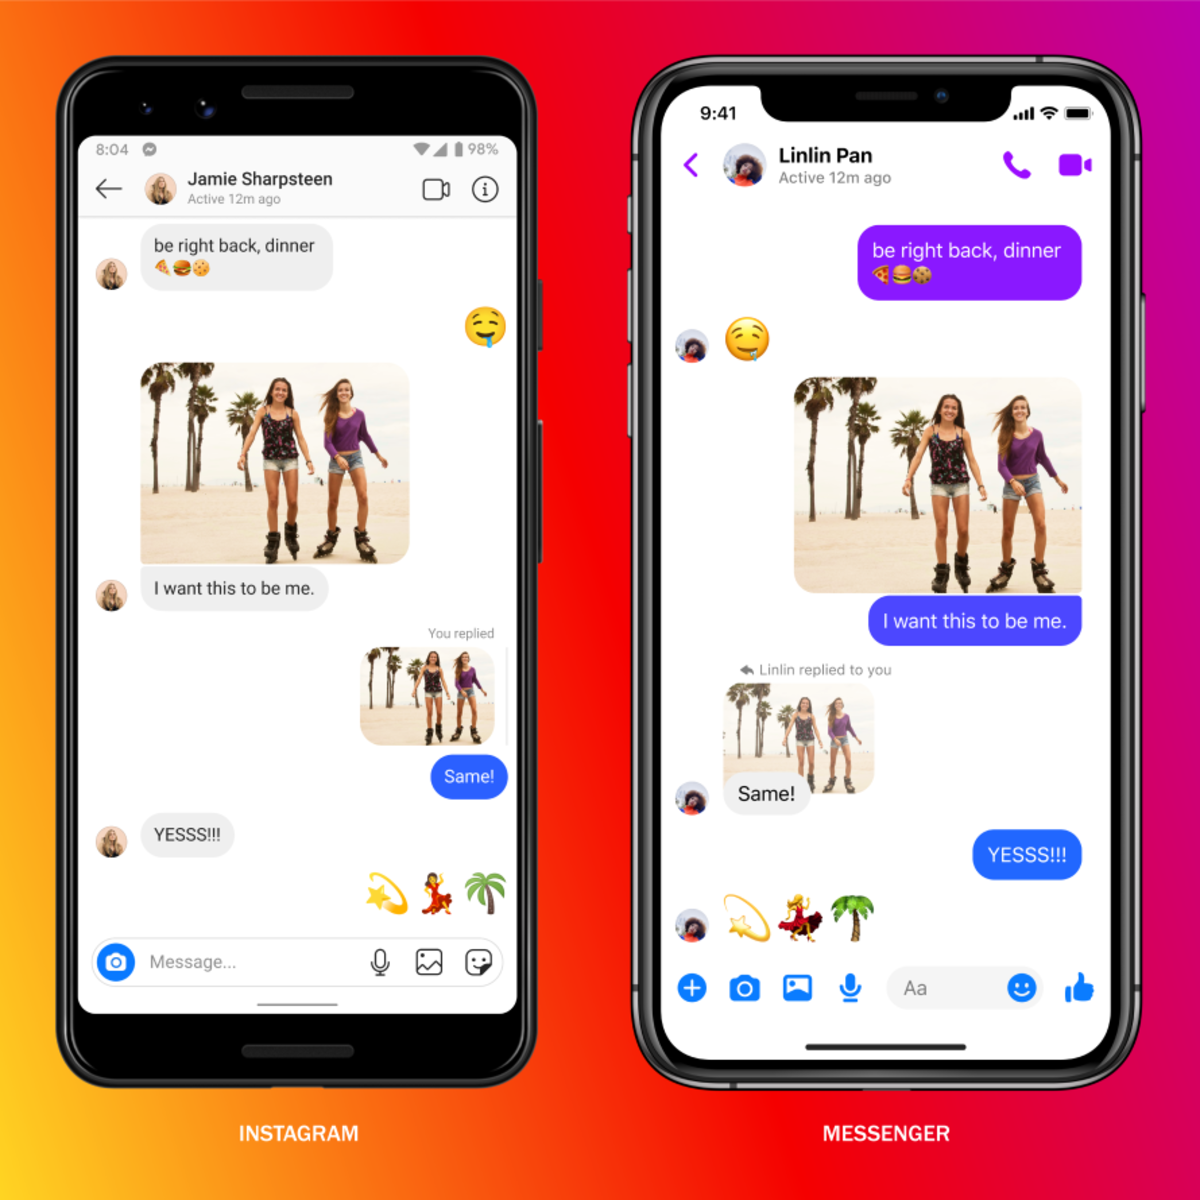 Instagram and Facebook Messenger's messaging interfaces going forward. Source: Facebook.